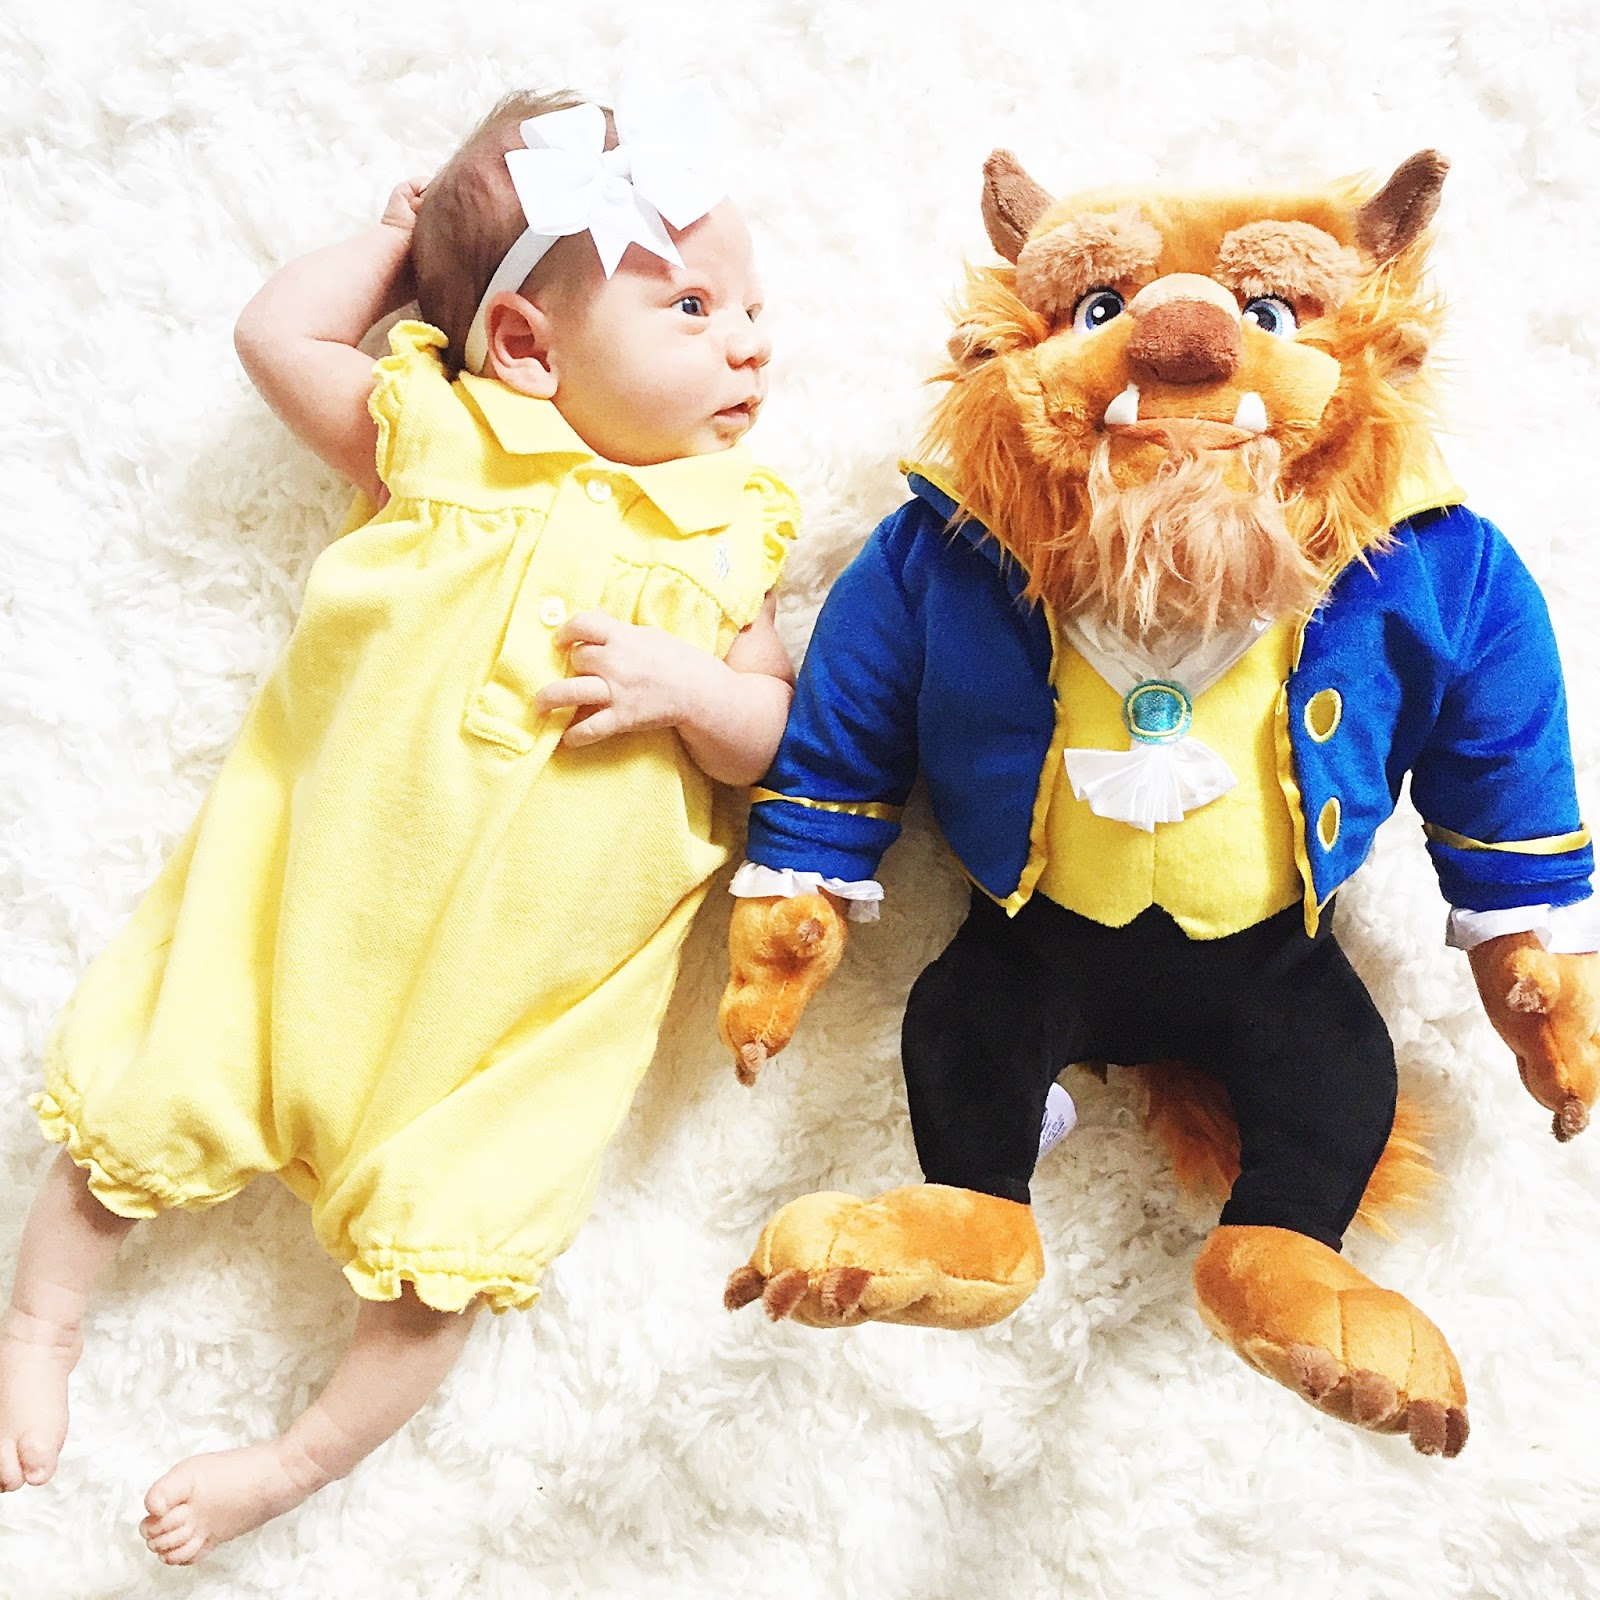 Dancing With Ashley Beauty and the Beast review